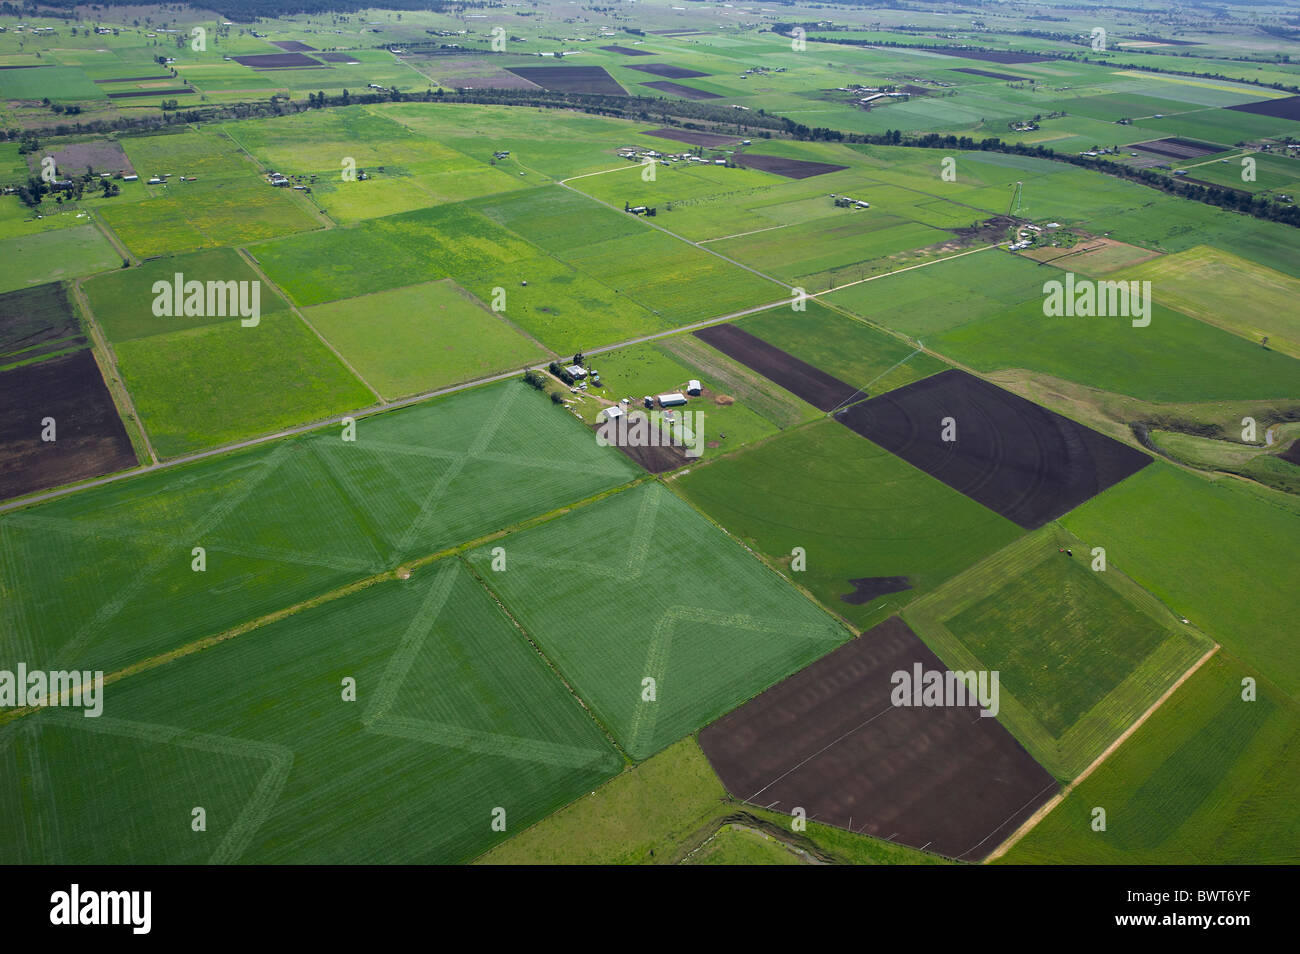 Aerial view of cropping Hunter Valley NSW Australia - Stock Image